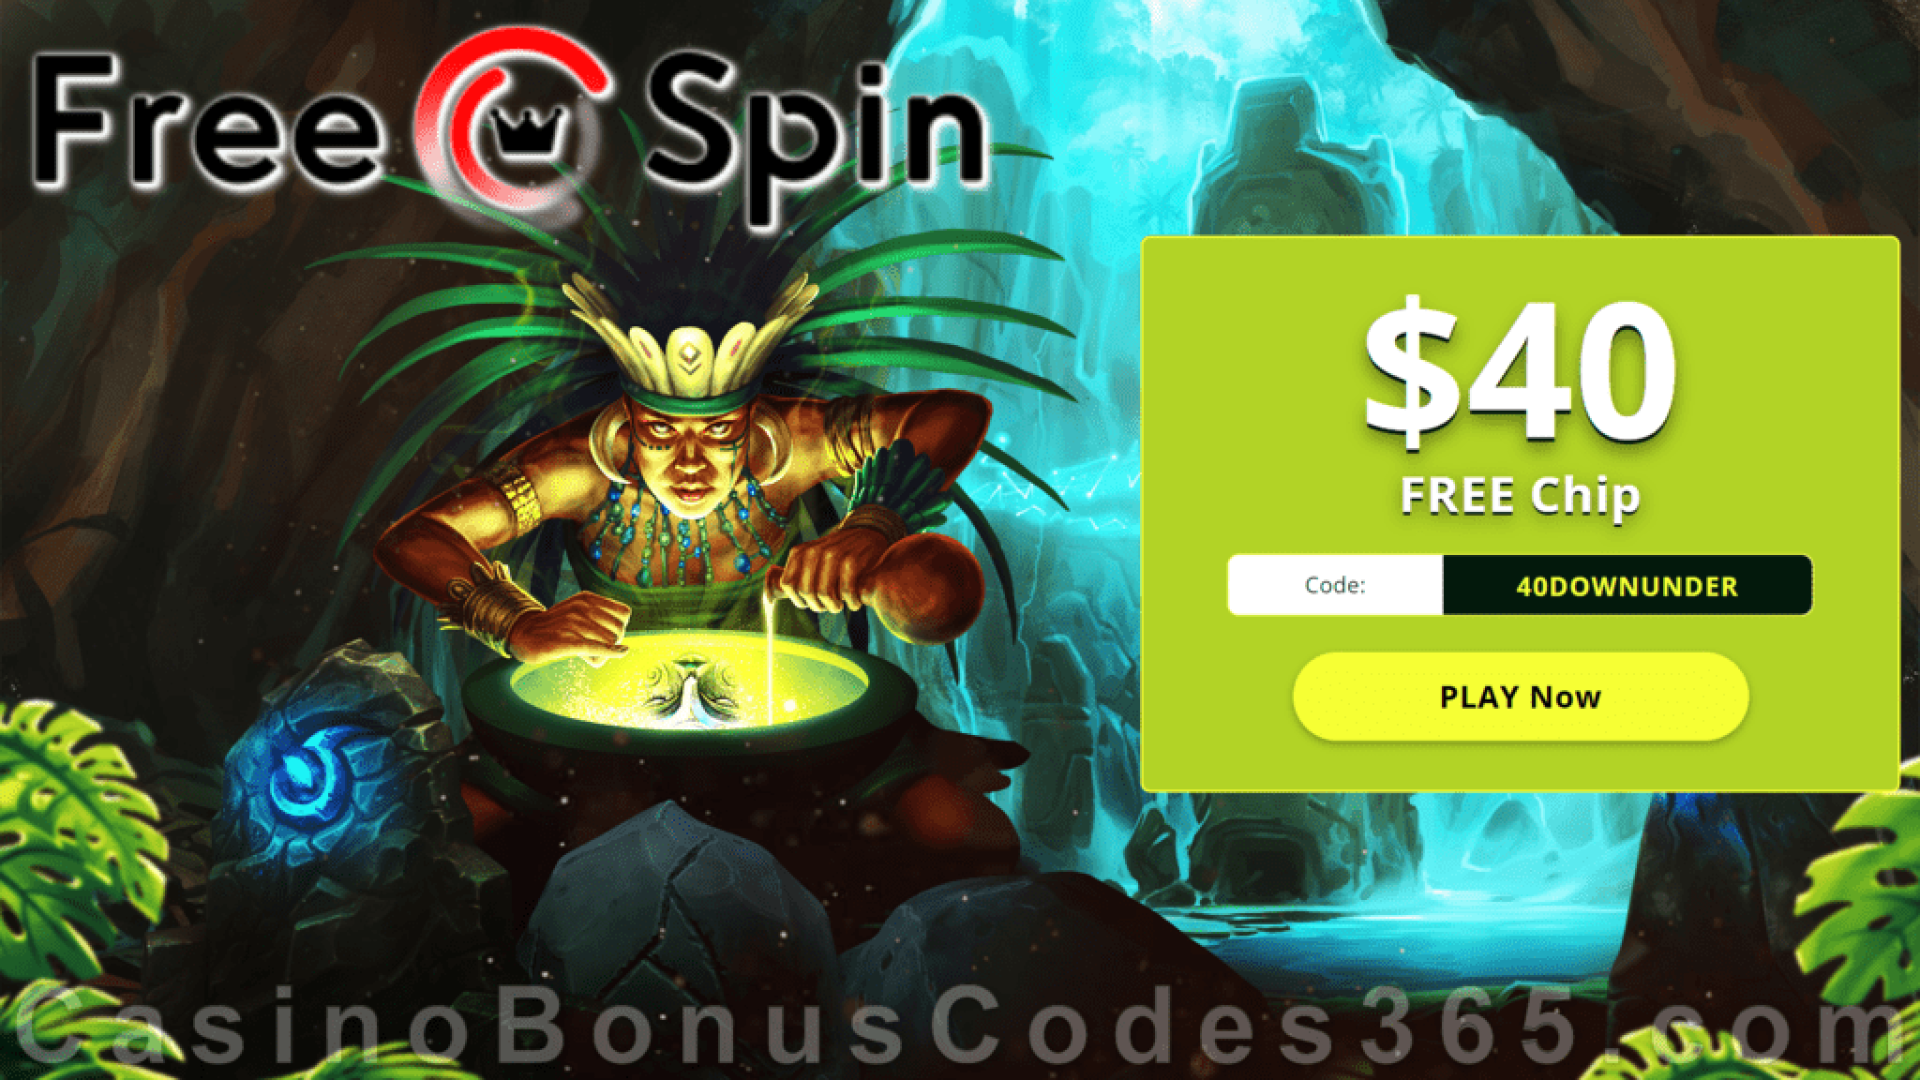 Free Spin Casino 40 Free Chip Exclusive No Deposit Deal Casino